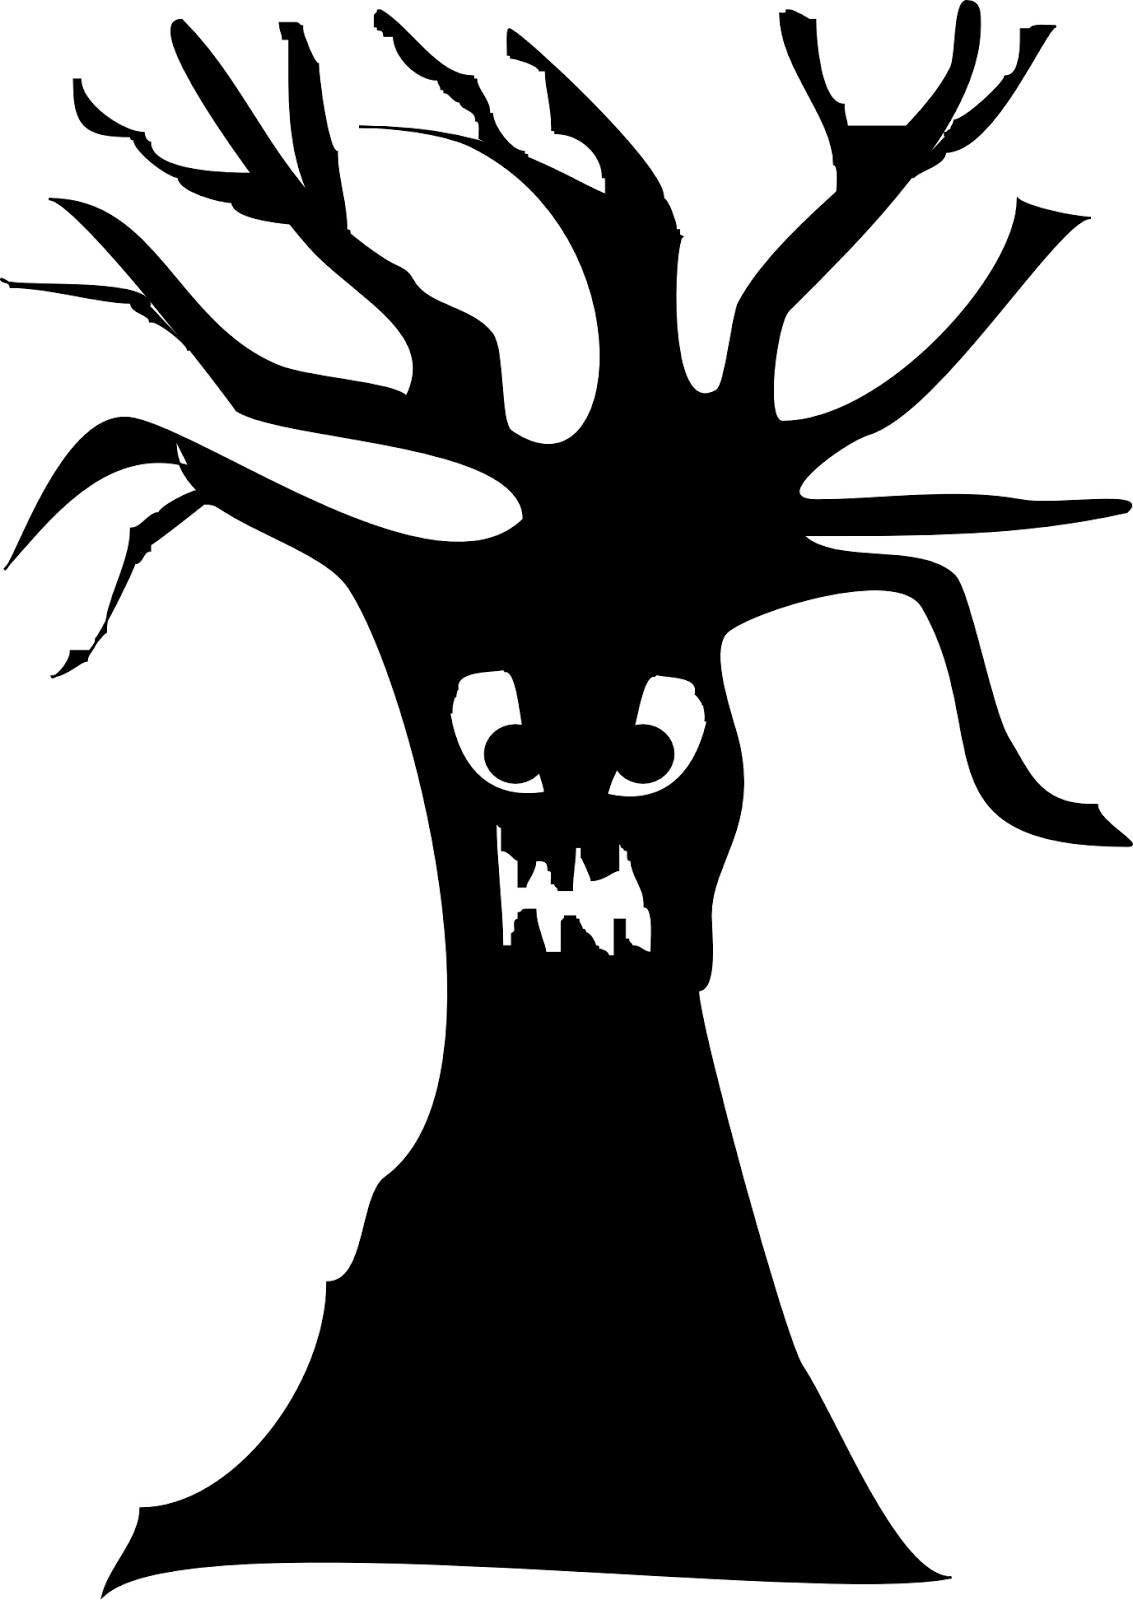 hight resolution of scary tree silhouette clipart library